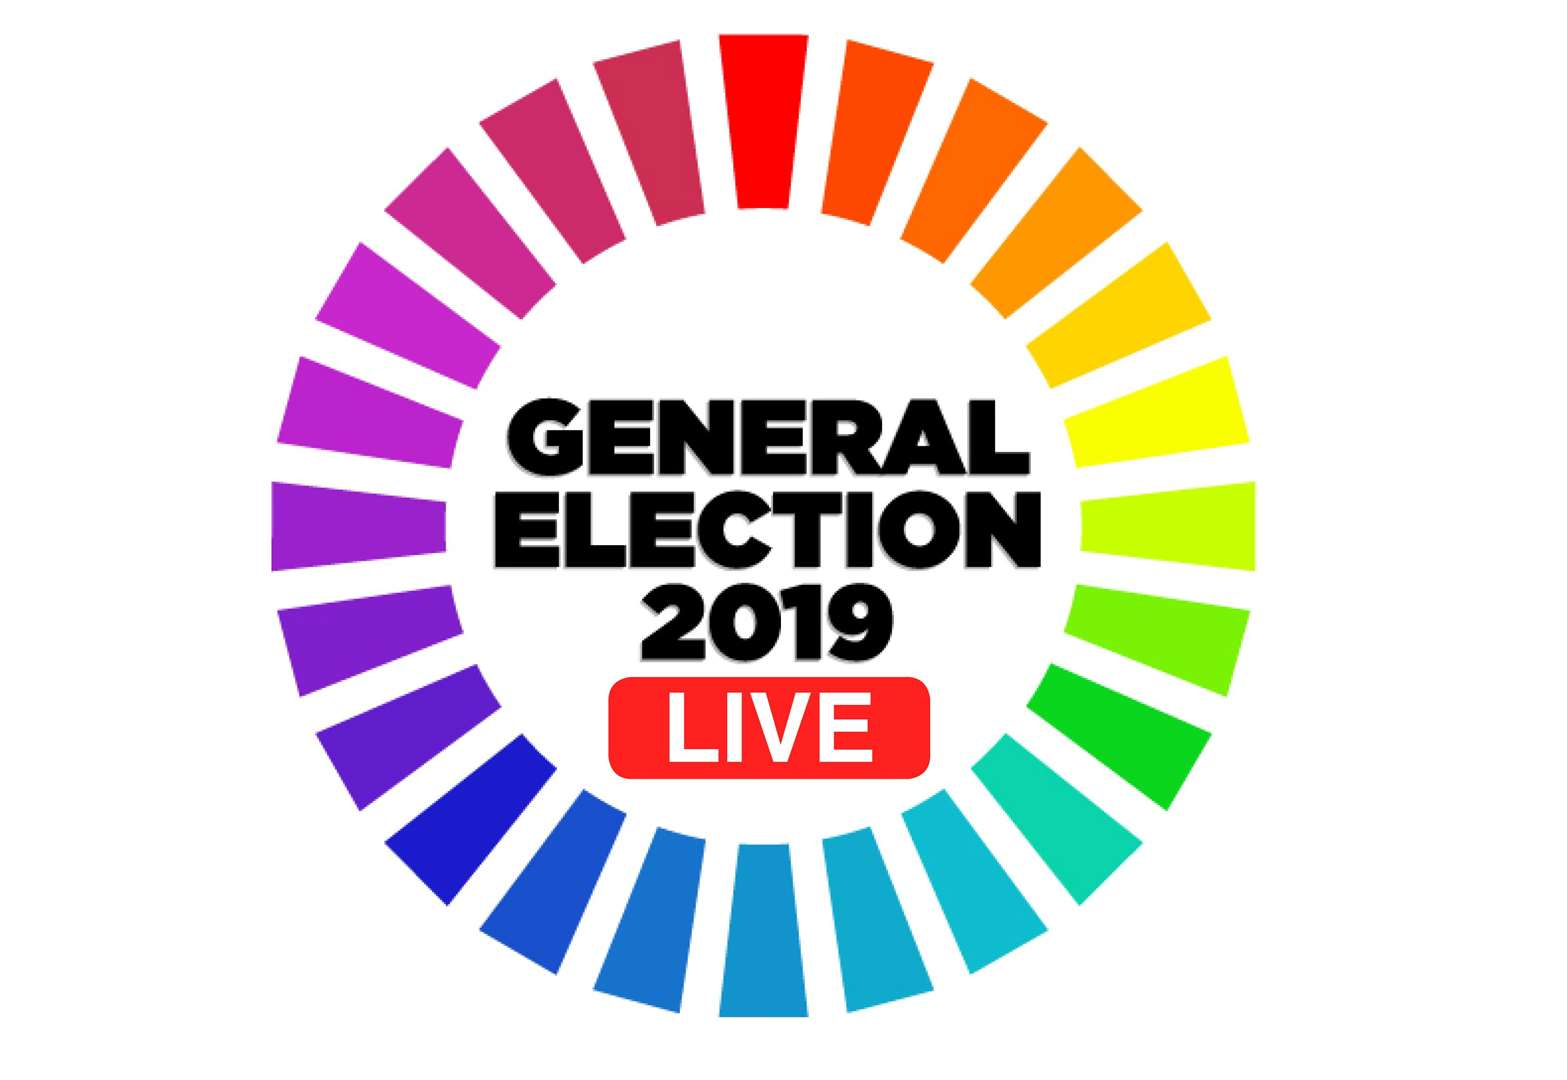 General Election 2019: Live coverage for Bury St Edmunds, West Suffolk and surrounding constituencies